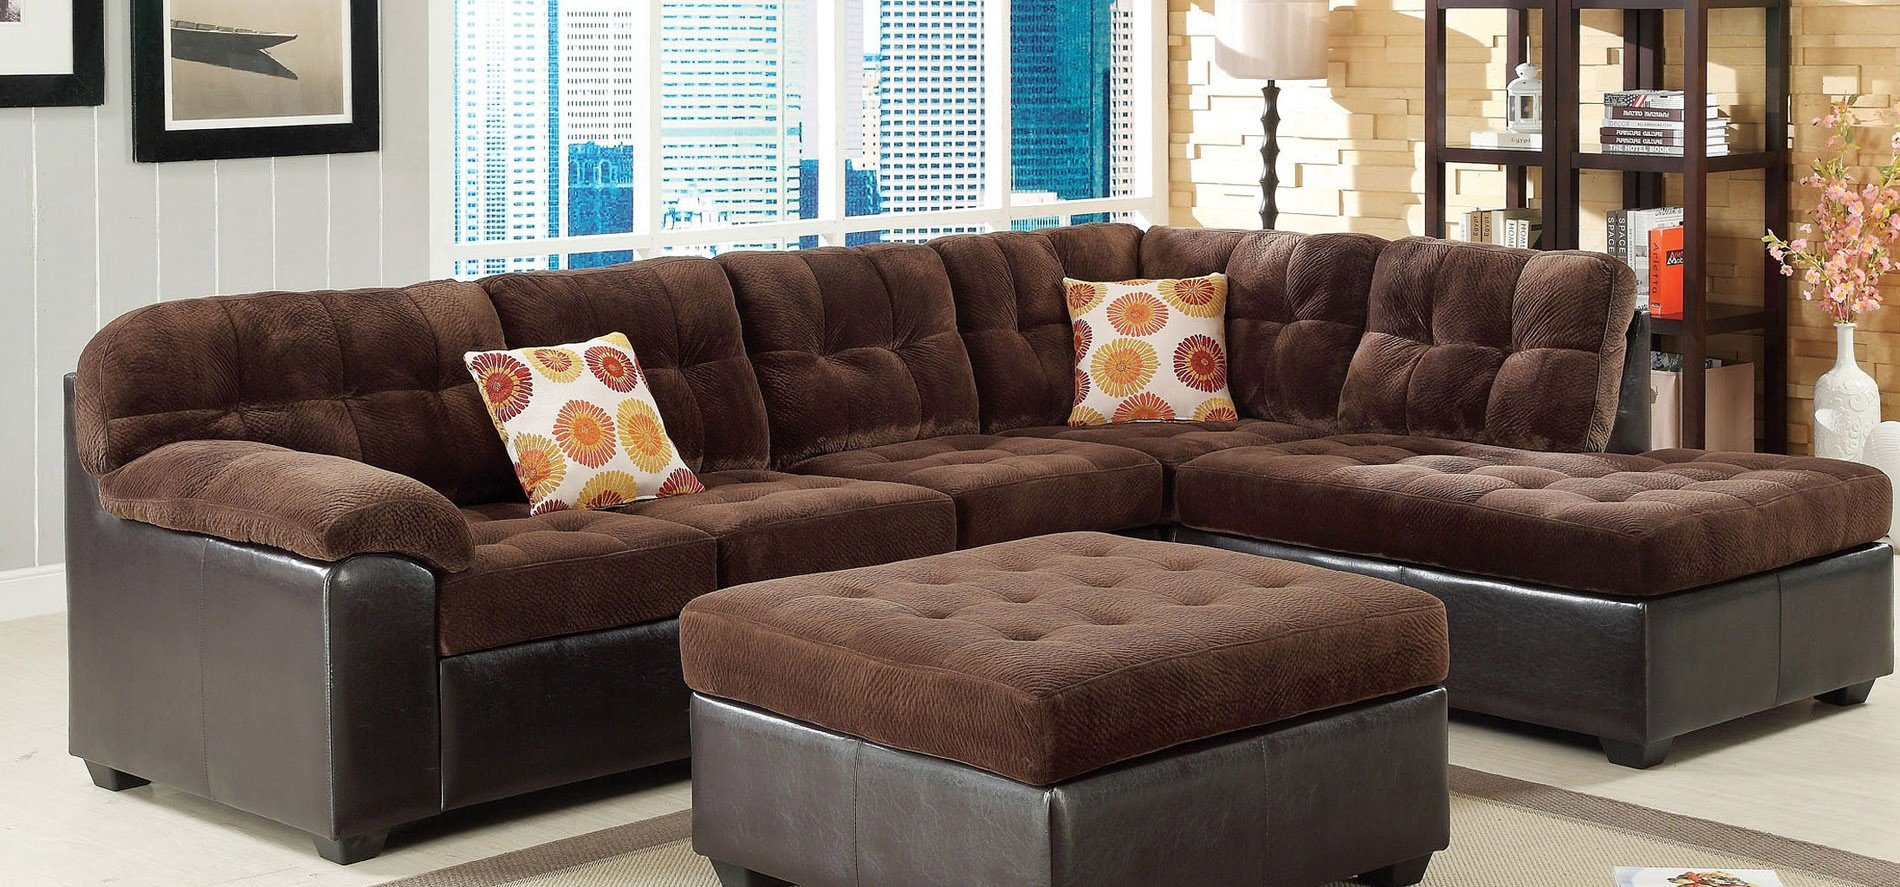 acme sectional sofa chocolate free table plans layce left facing furniture cart